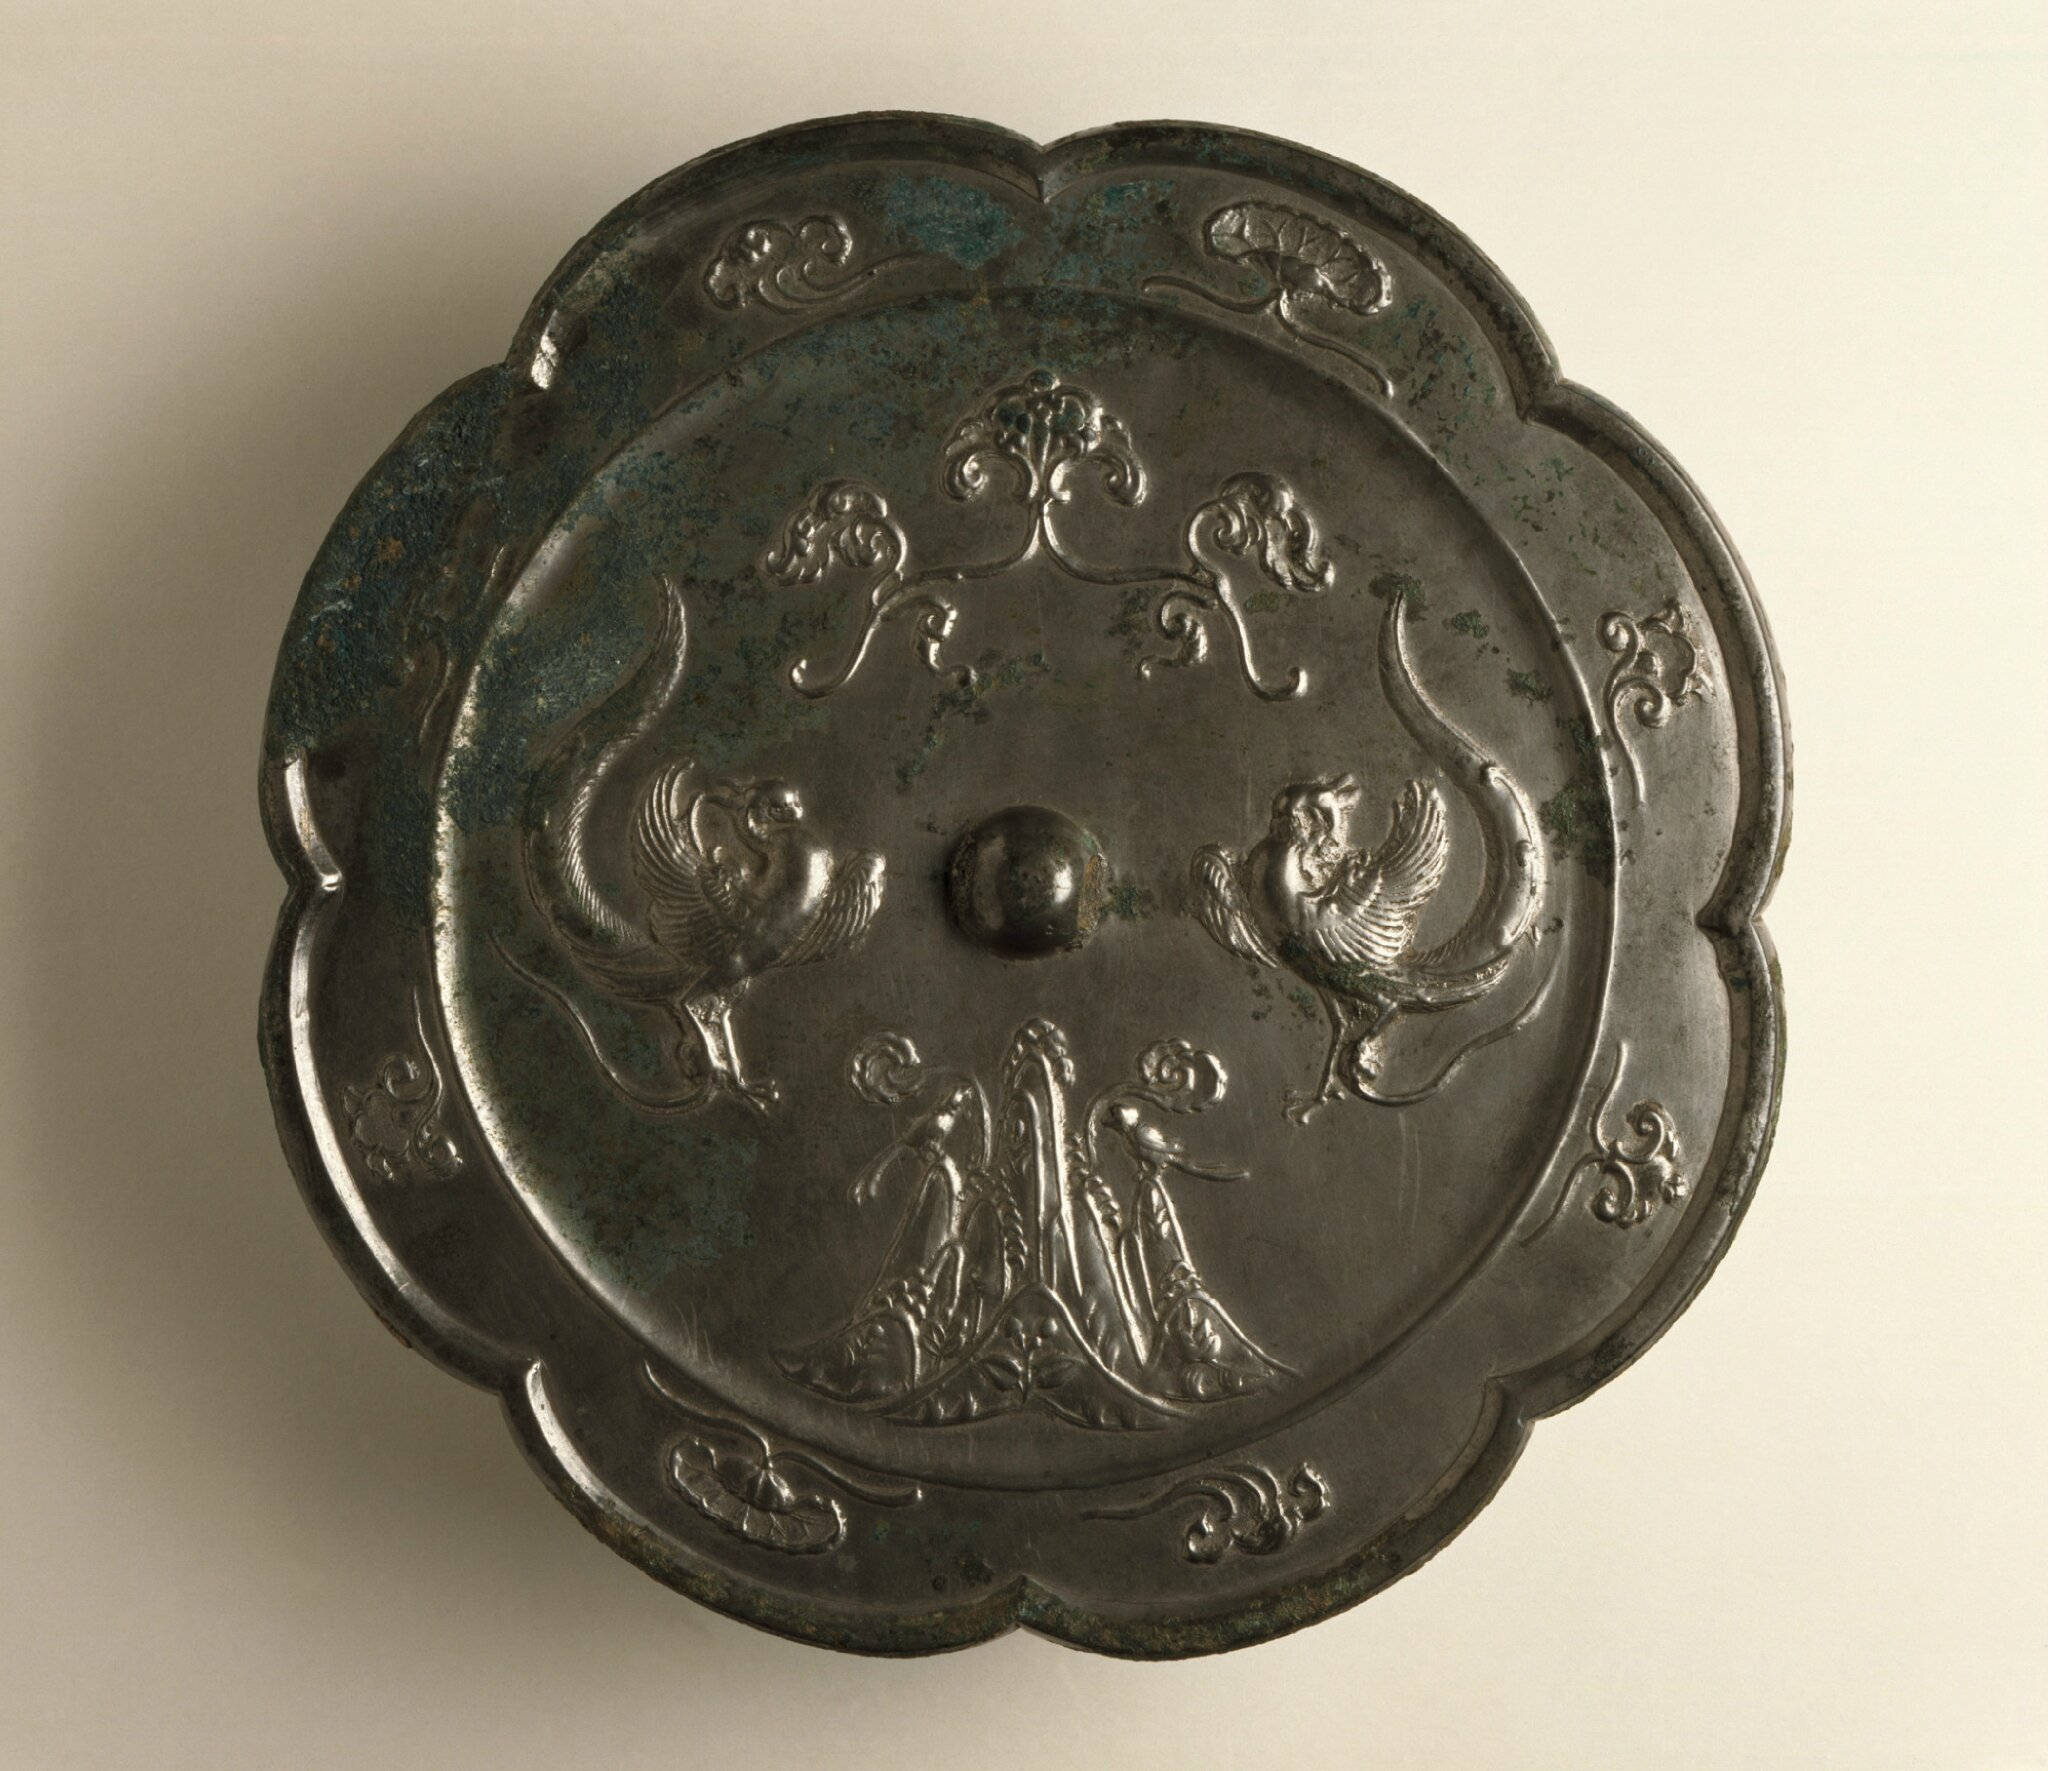 Mirror (Jing) with Mountains, Phoenixes, and Clouds, China, Middle Tang dynasty, about 700-800